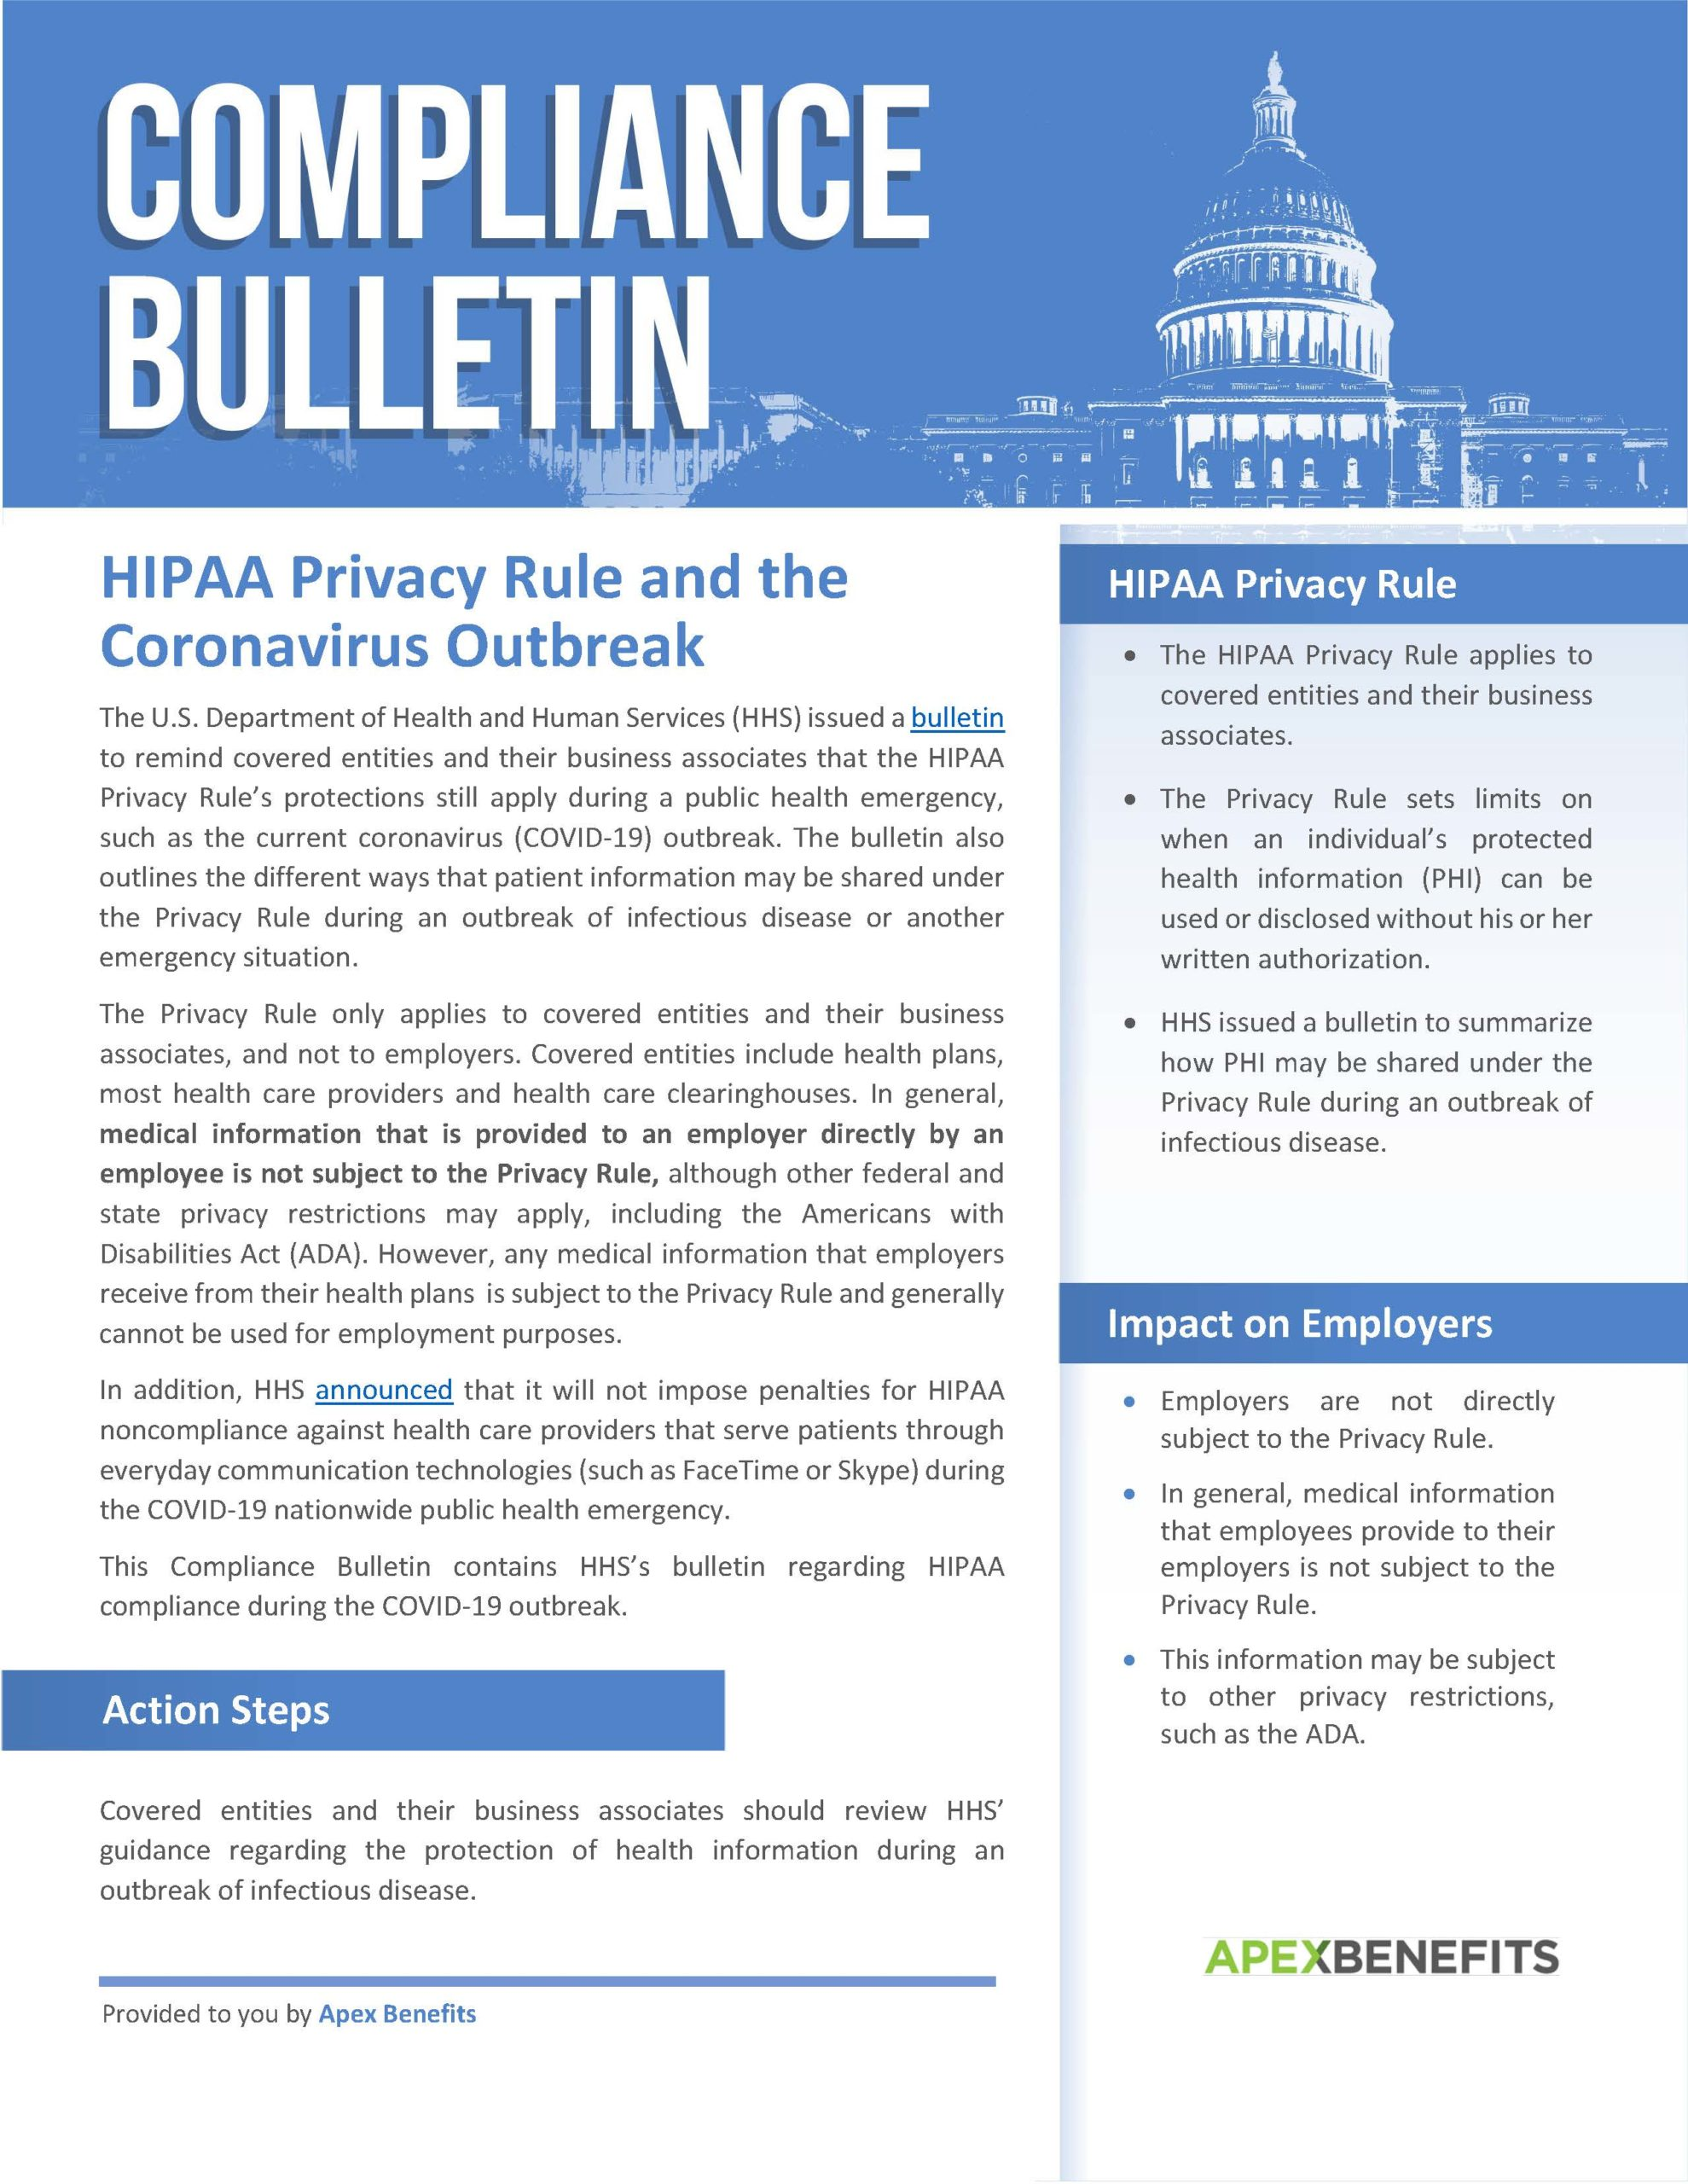 HIPAA Privacy Rules COVID-19